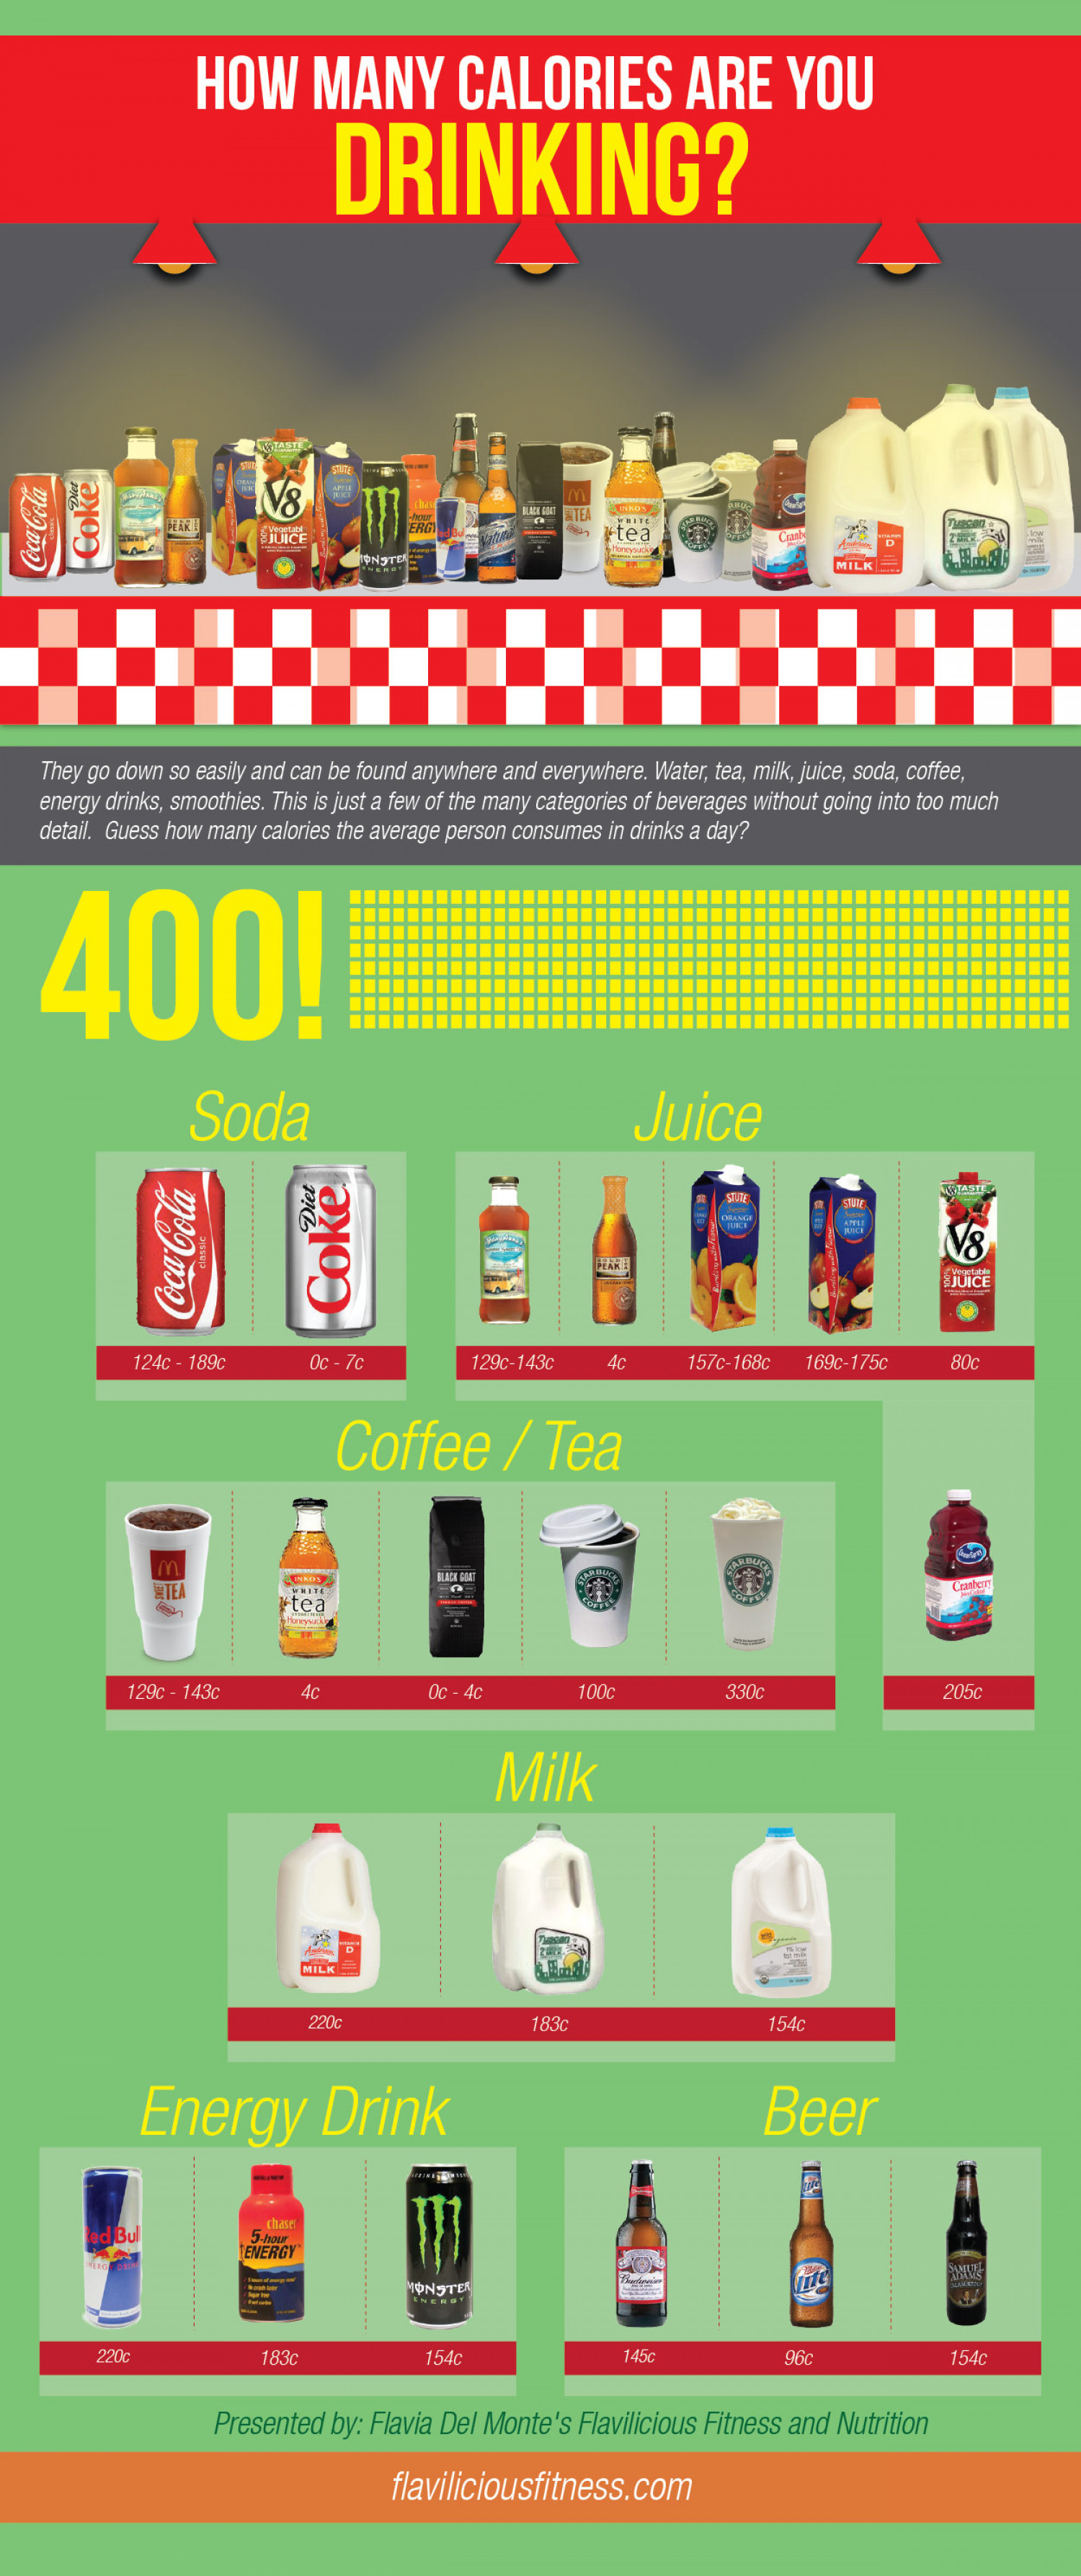 How Many Calories Are You Drinking? Infographic